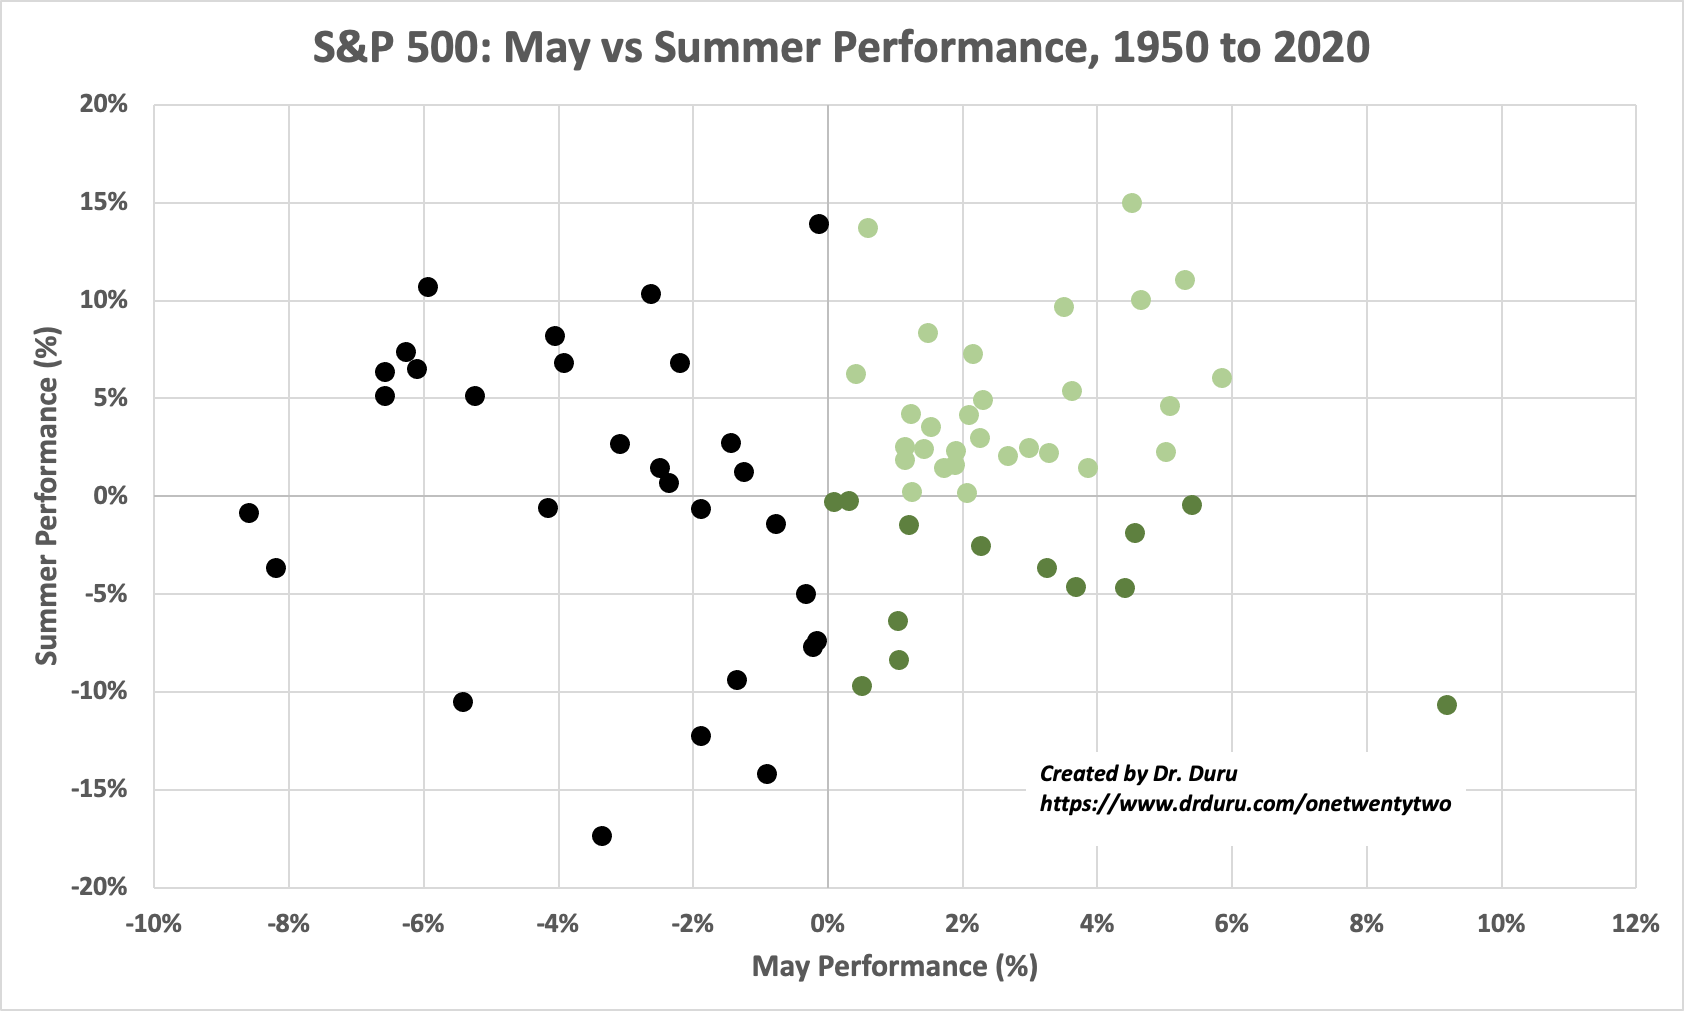 A Sell In May Visual for the S&P 500: May vs Summer Performance, 1950 to 2020